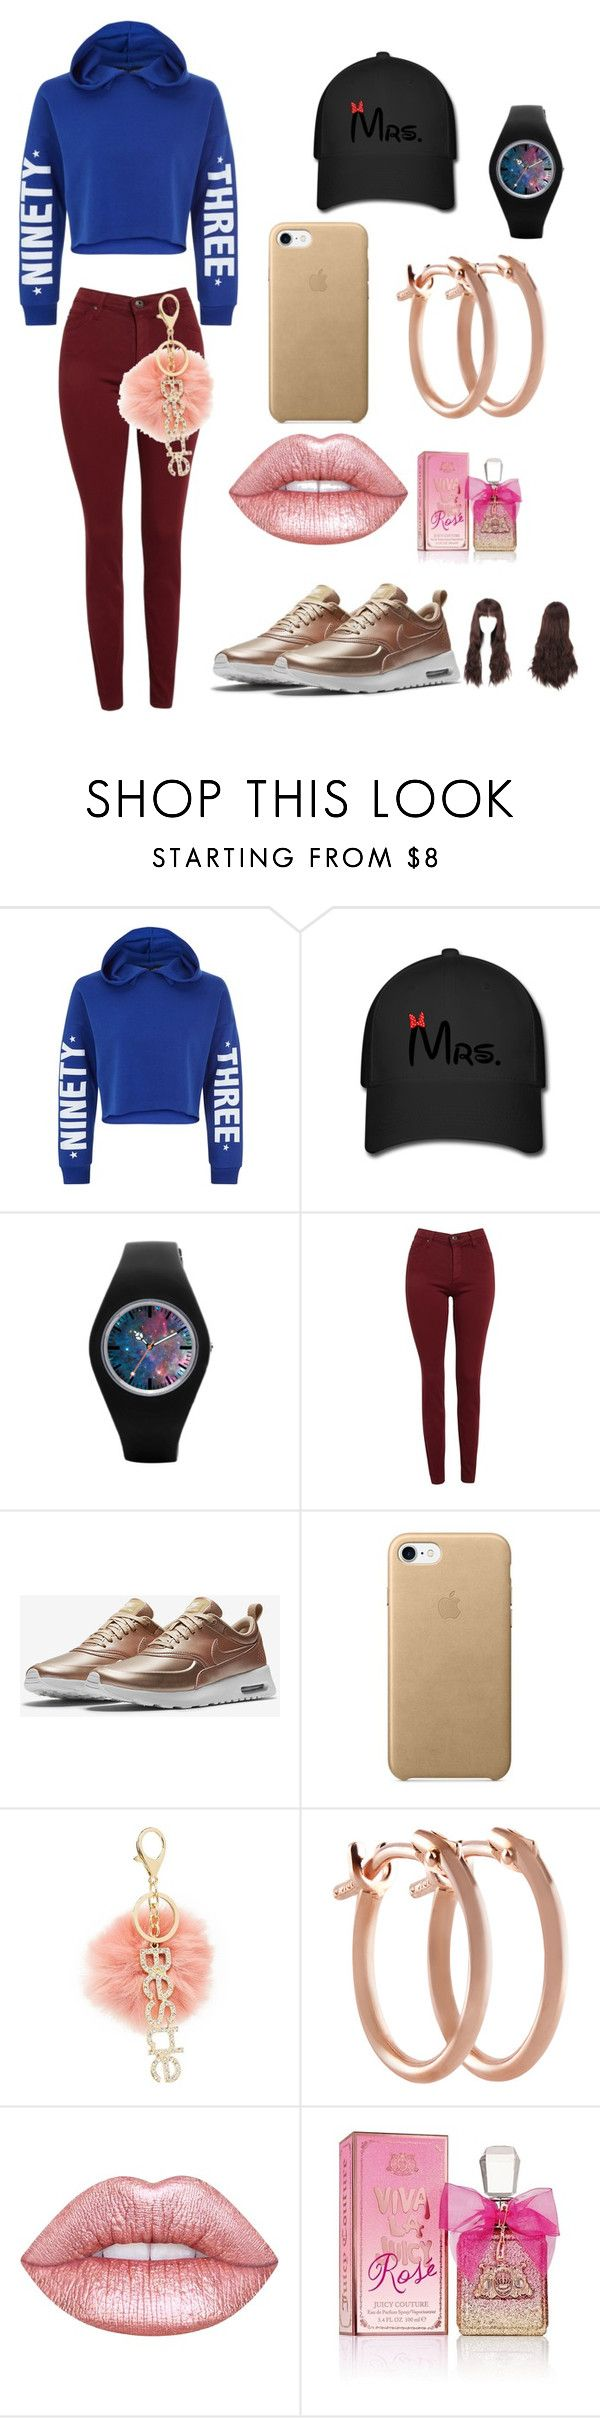 """Untitled #109"" by queenniyniy on Polyvore featuring New Look, AG Adriano Goldschmied, NIKE, Charlotte Russe, Pori, Lime Crime and Juicy Couture"